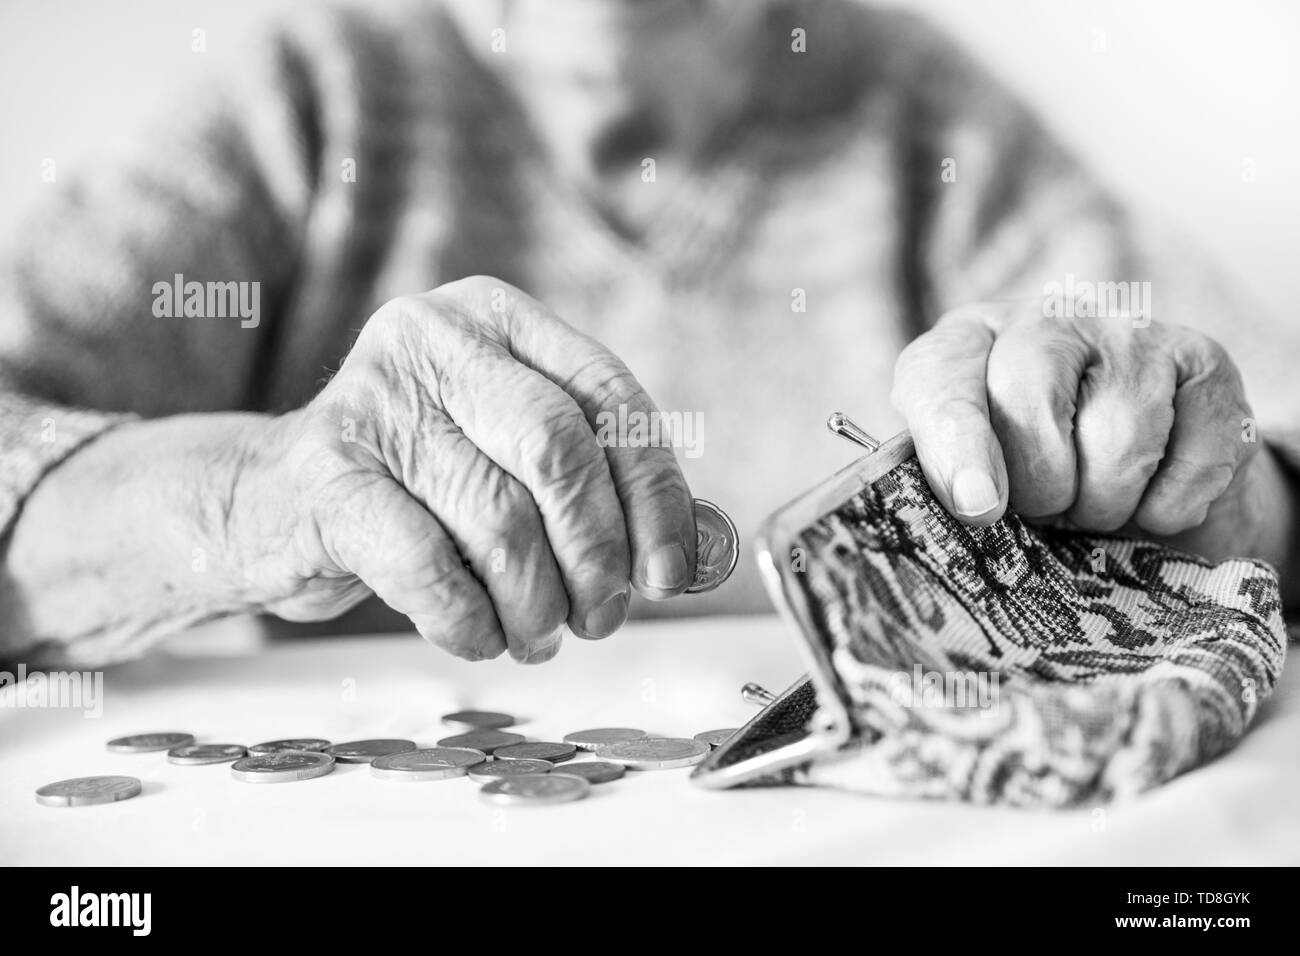 Detailed closeup photo of unrecognizable elderly womans hands counting remaining coins from pension in her wallet after paying bills. - Stock Image